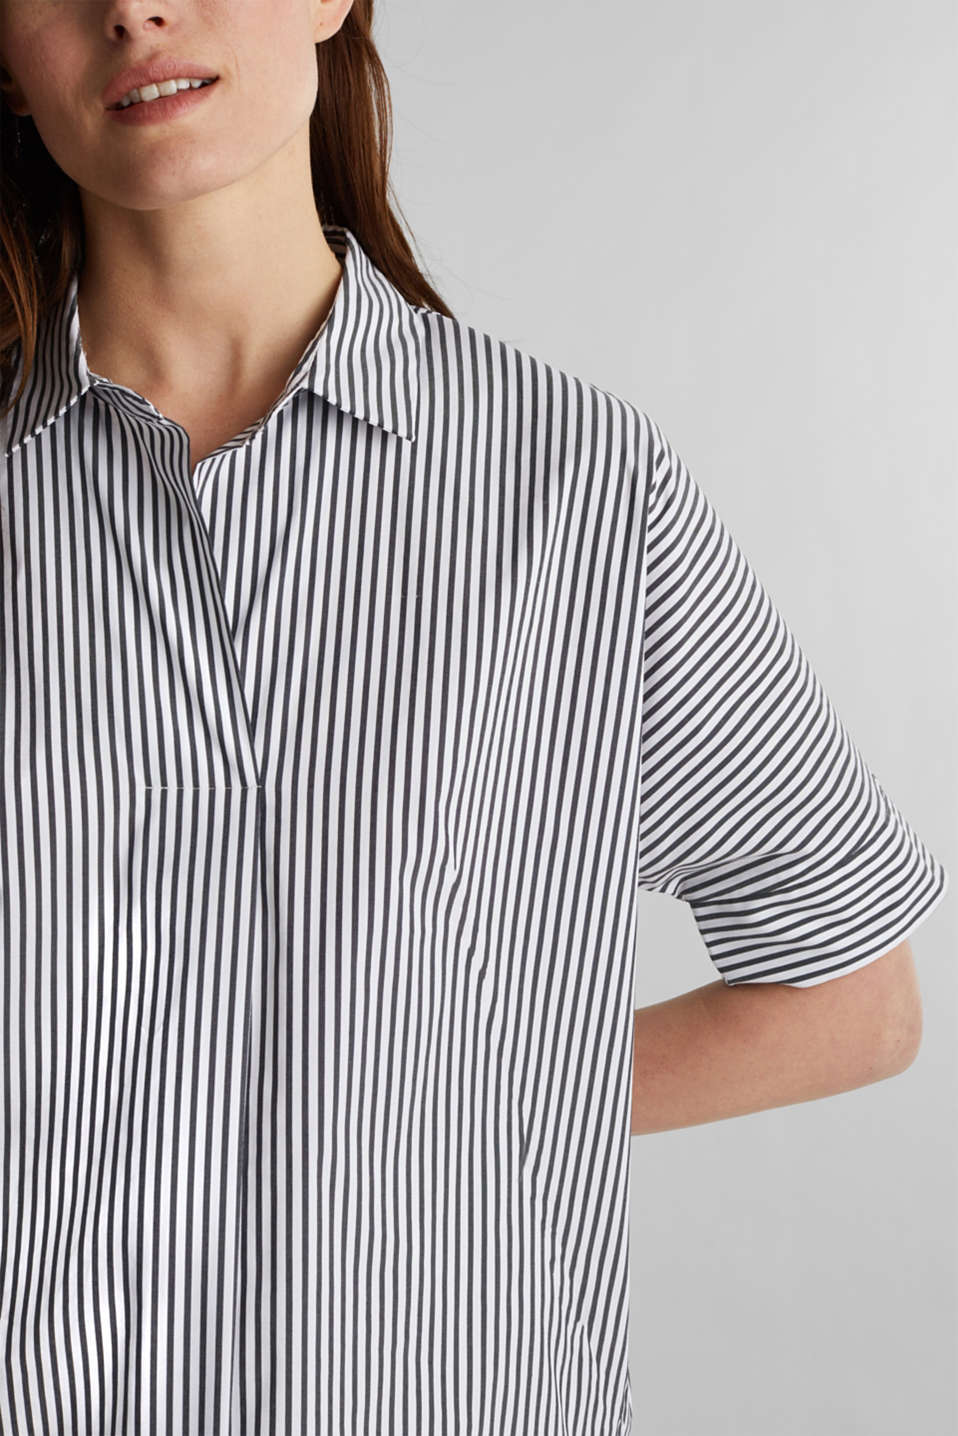 Striped slip-on blouse in a boxy fit, BLACK 2, detail image number 2